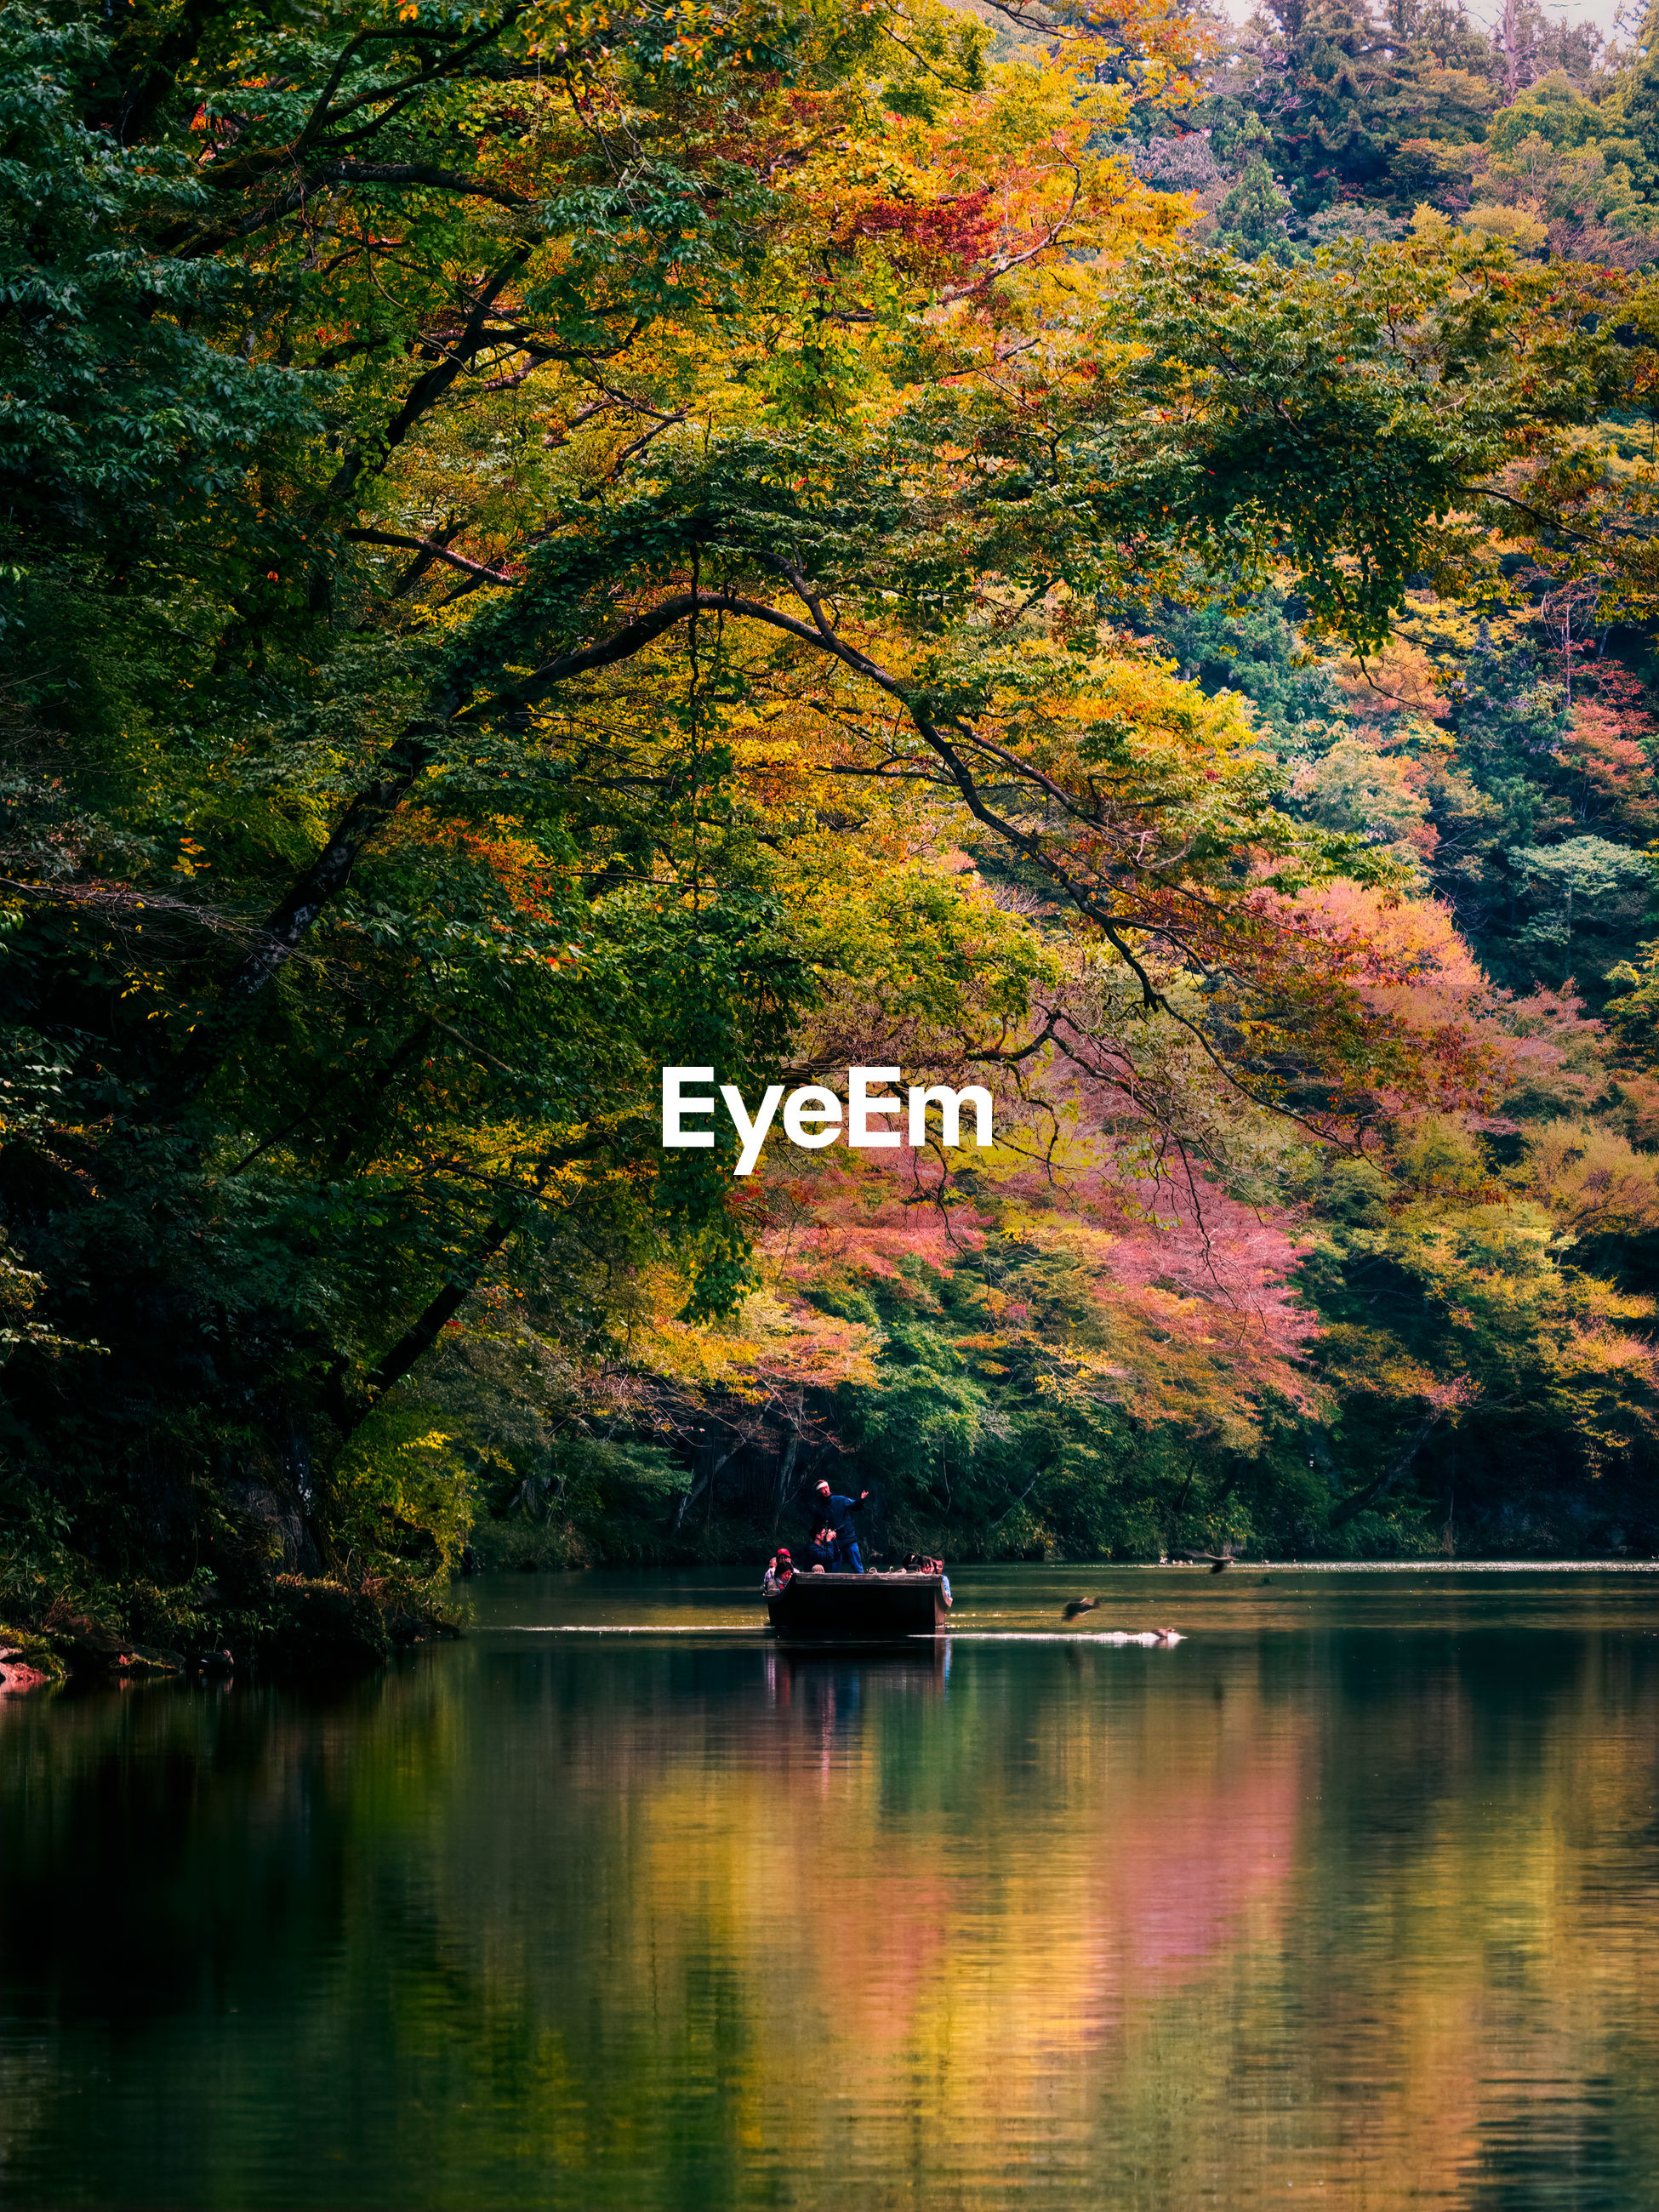 SCENIC VIEW OF LAKE IN AUTUMN